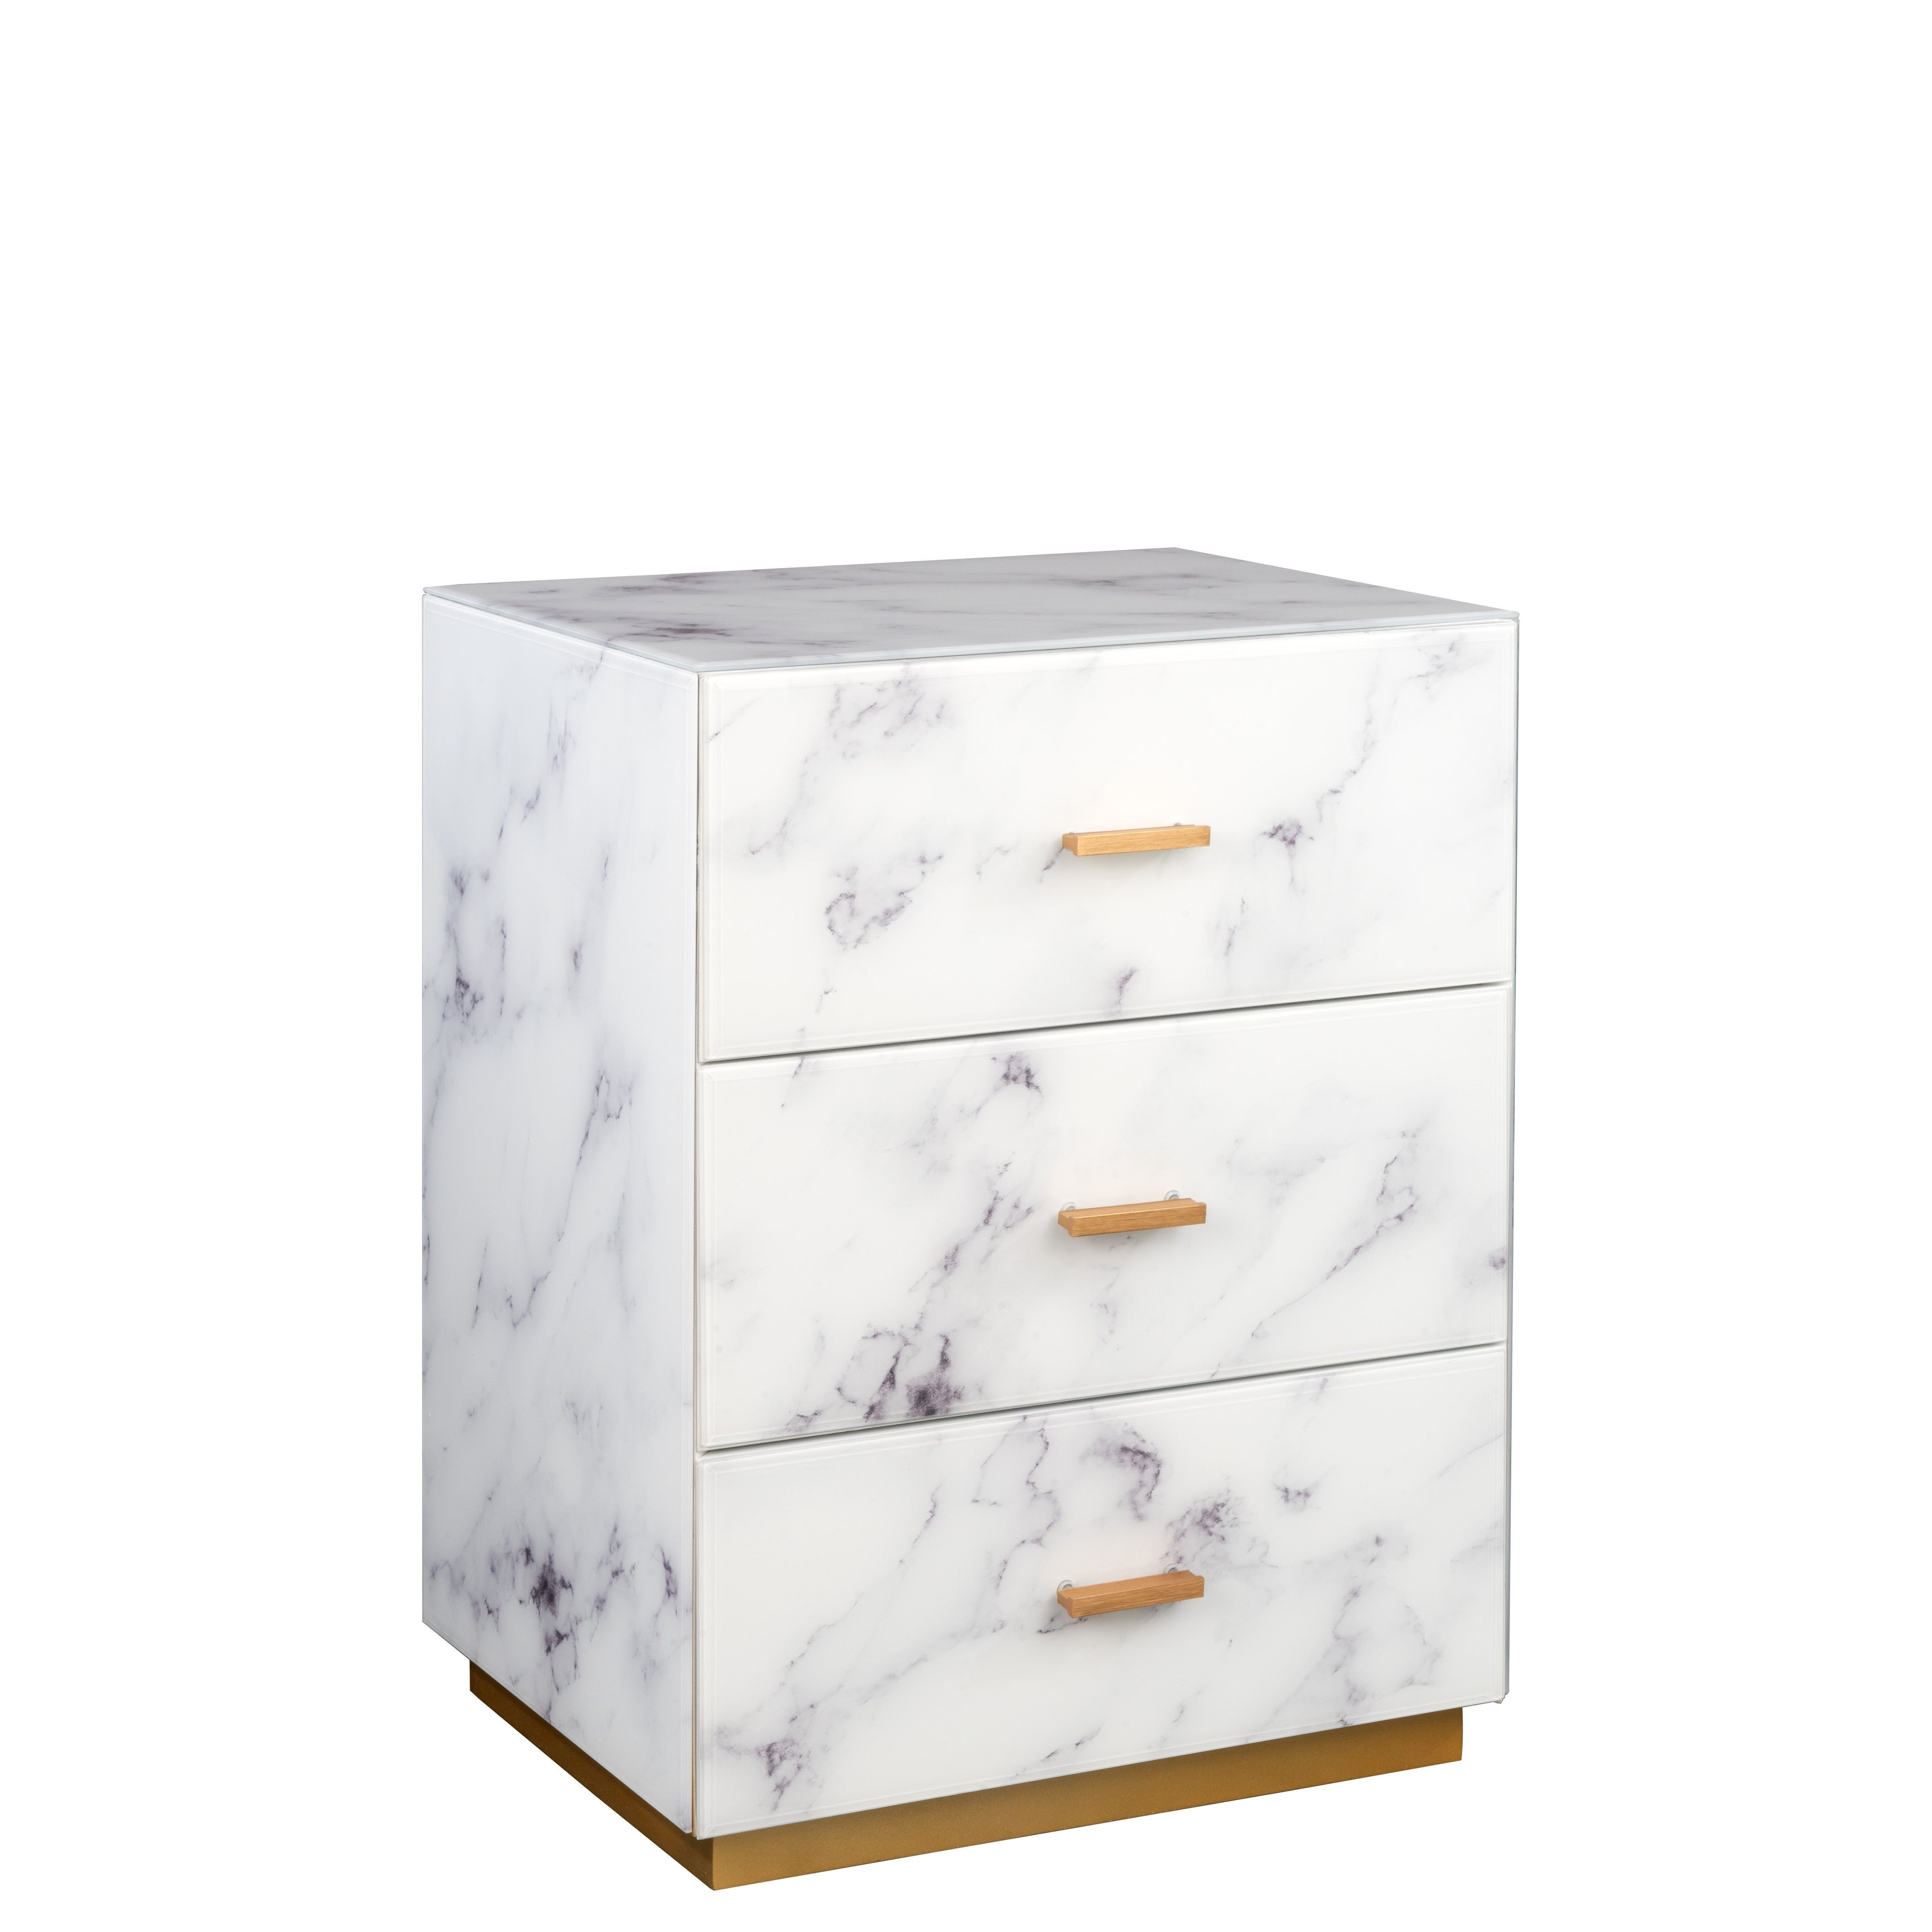 Statements By J Modern Nightstand W 3 Drawers 25 Inch Tall White On Sale Overstock 32042273